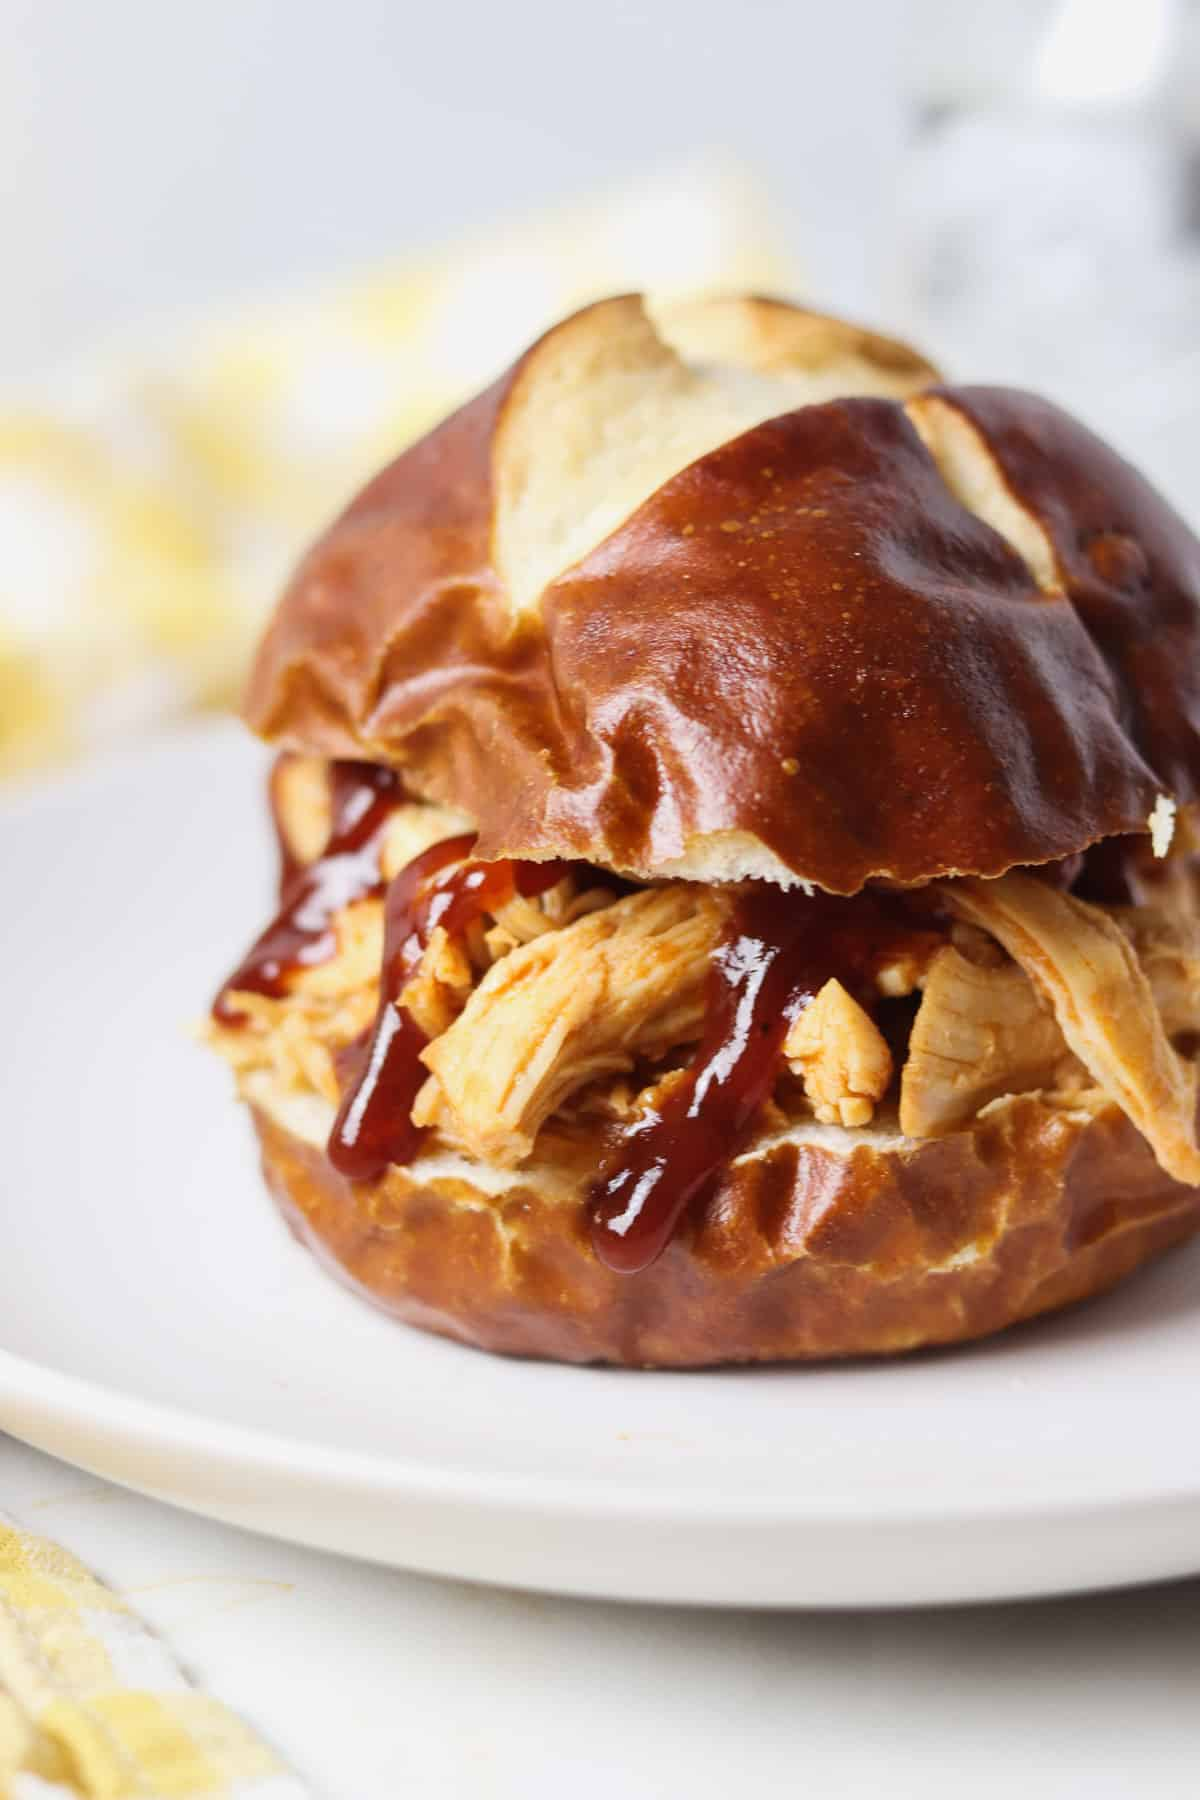 shredded bbq chicken on a pretzel bun